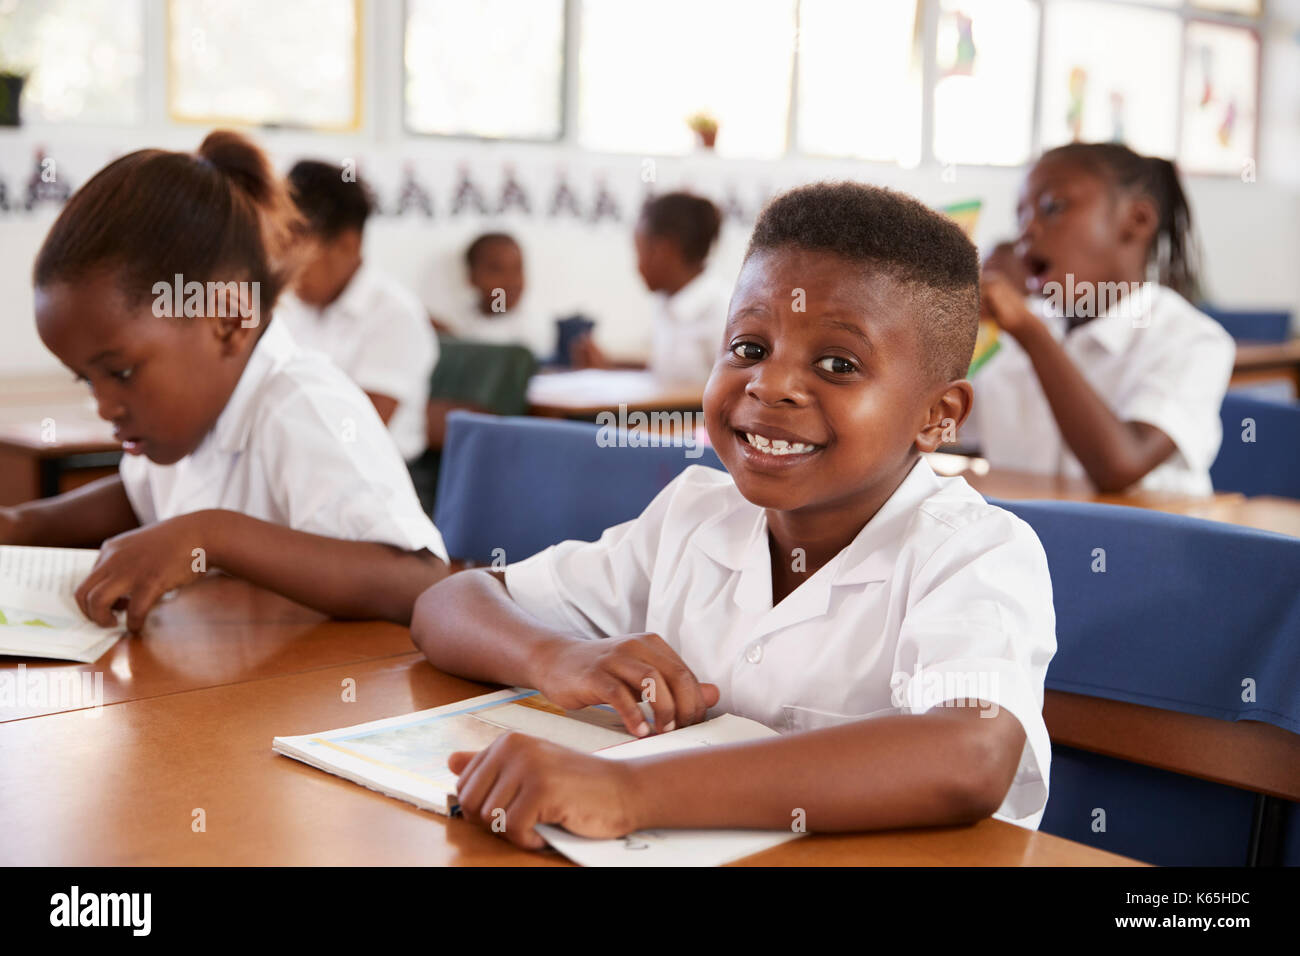 Elementary school boy smiling at camera at his desk in class - Stock Image